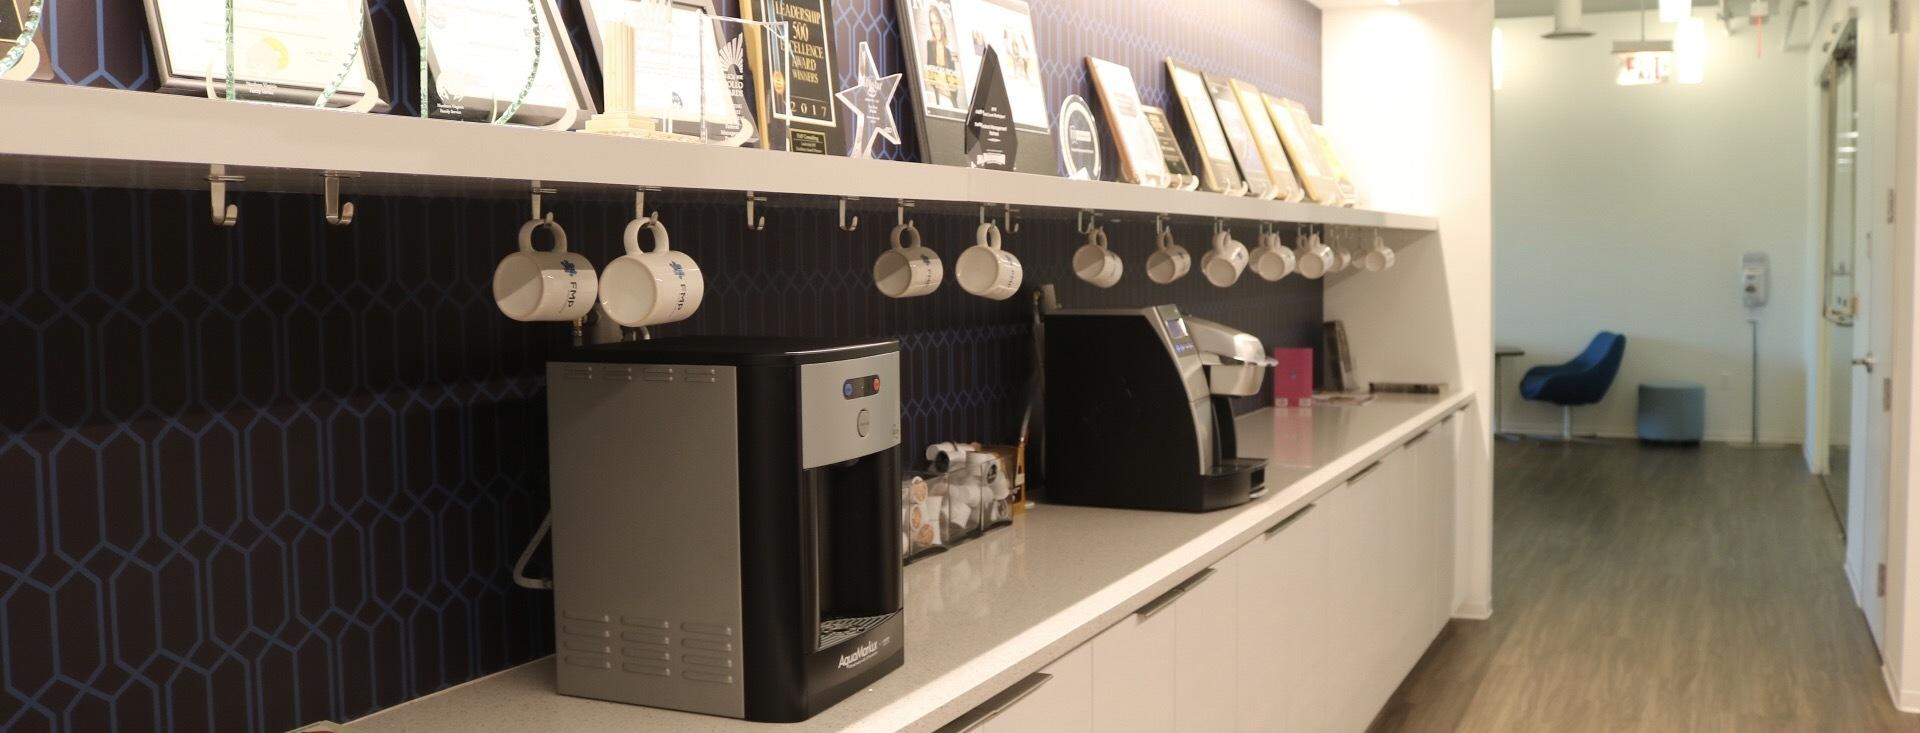 Photo of FMP office space, focusing on keurigs and coffee mugs